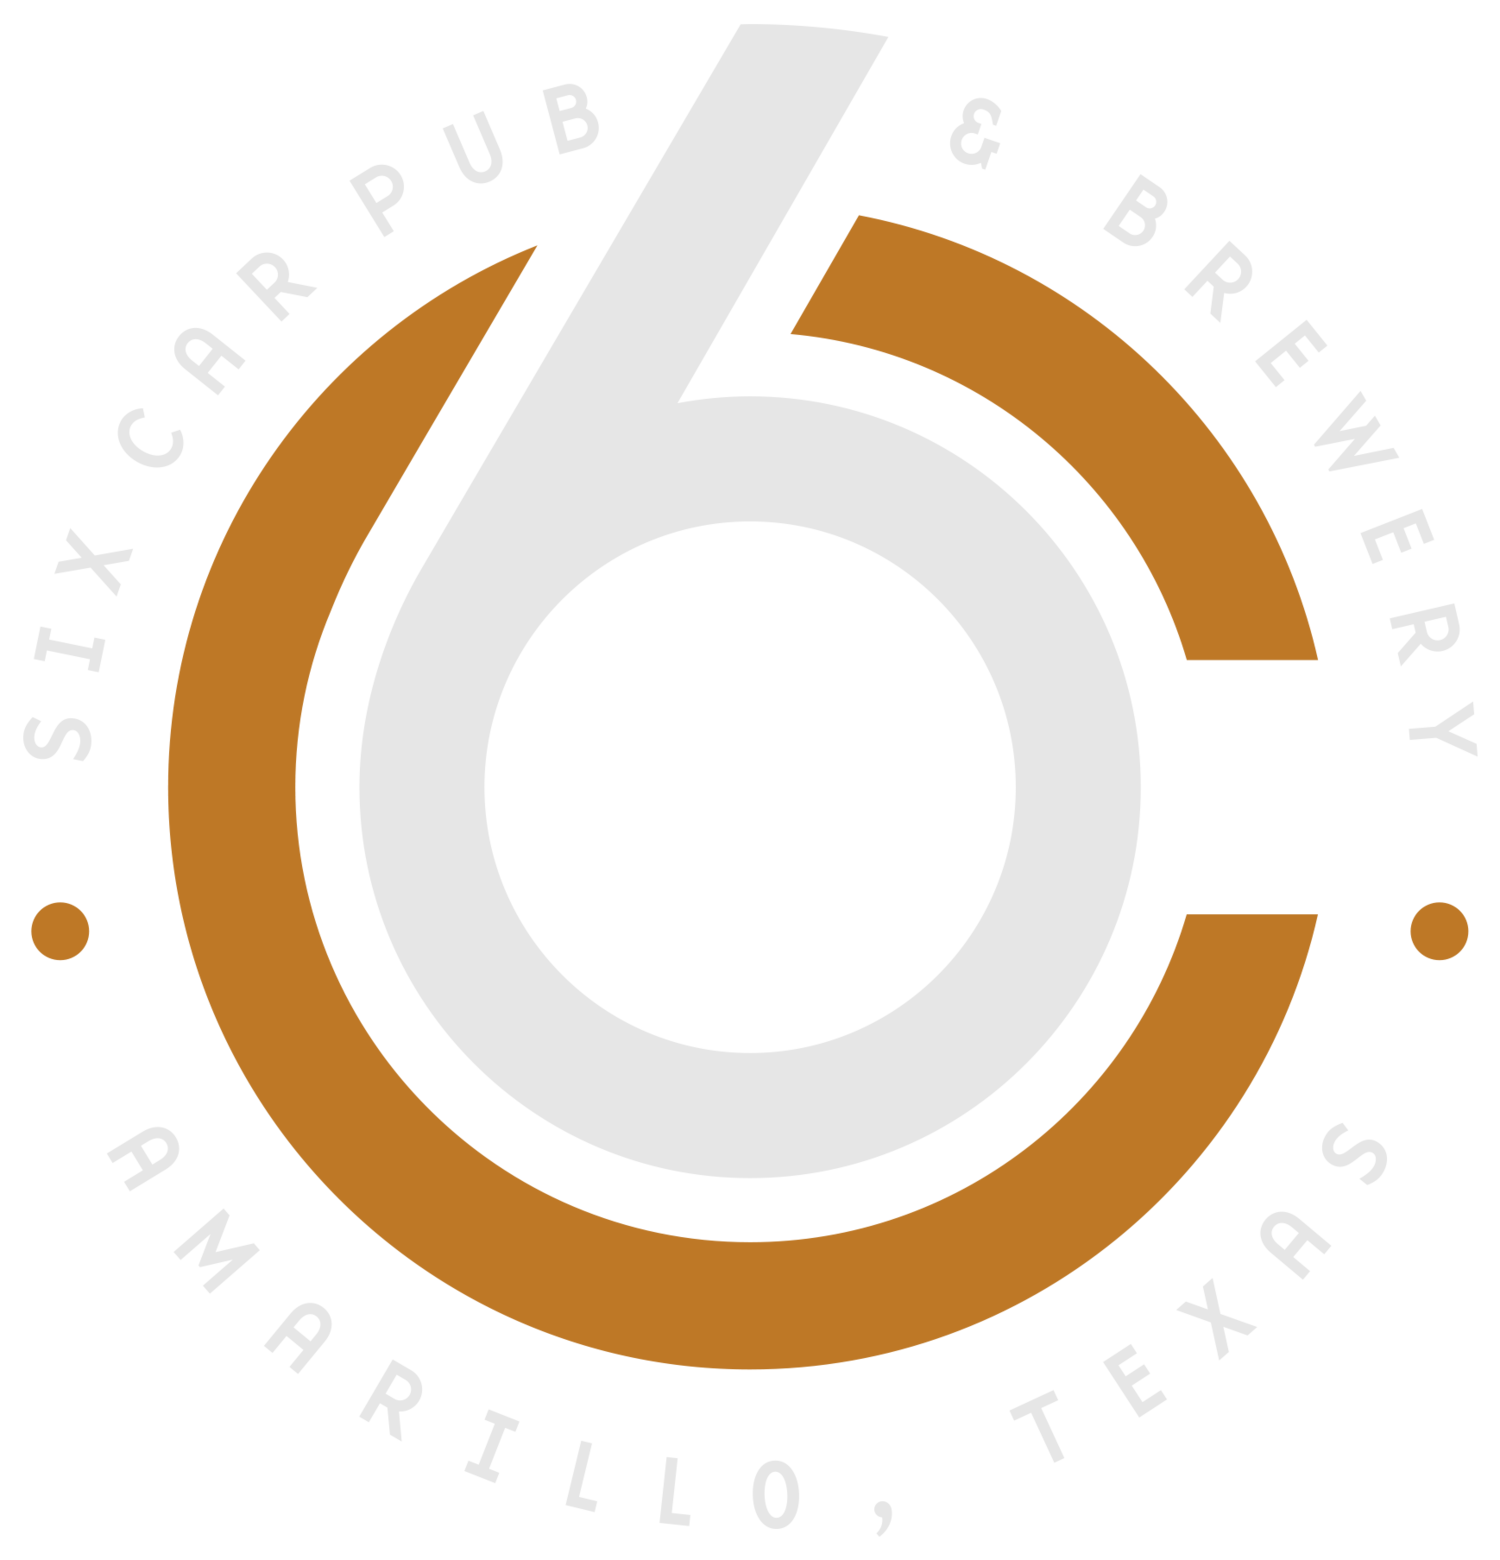 Six Car Pub & Brewery